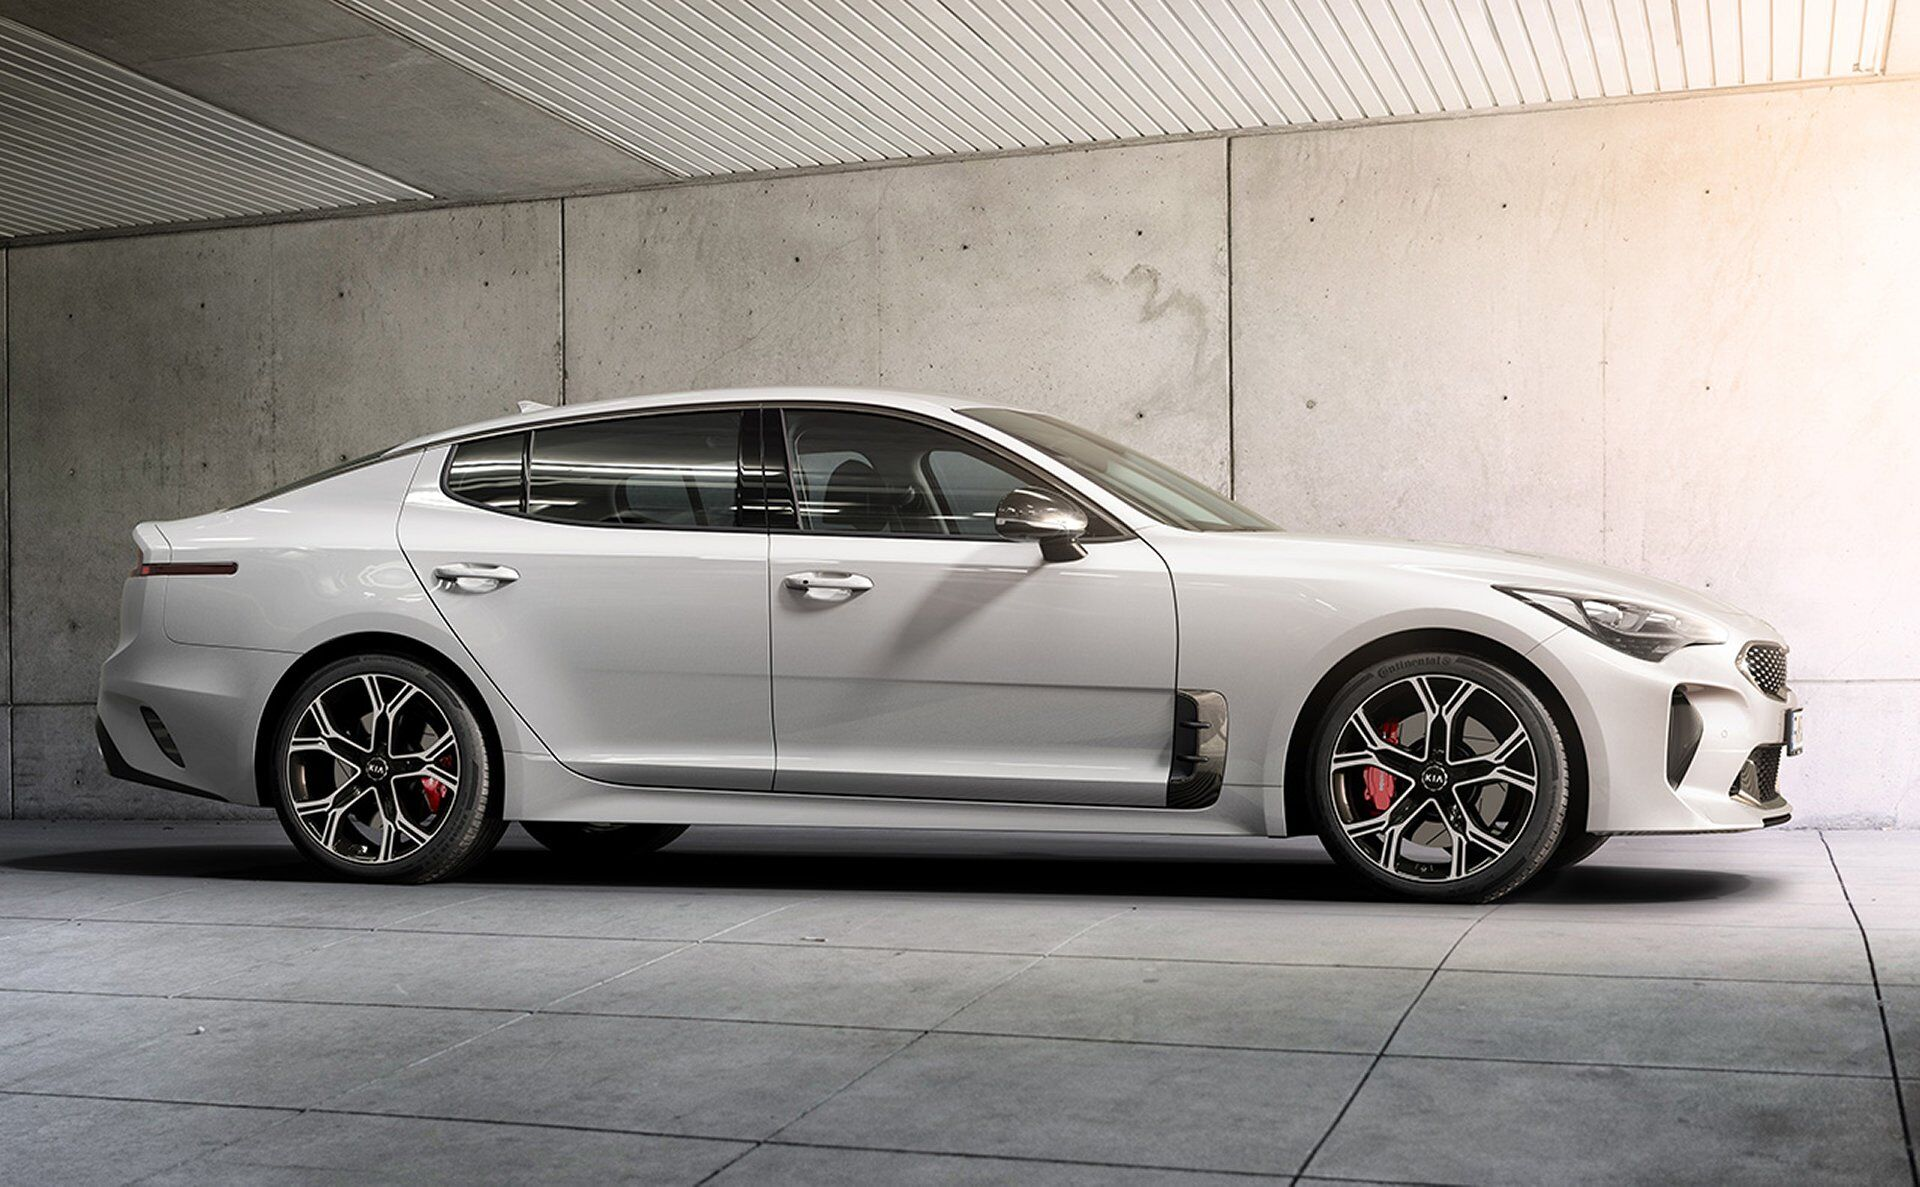 2018 Kia Stinger in Prescott Valley